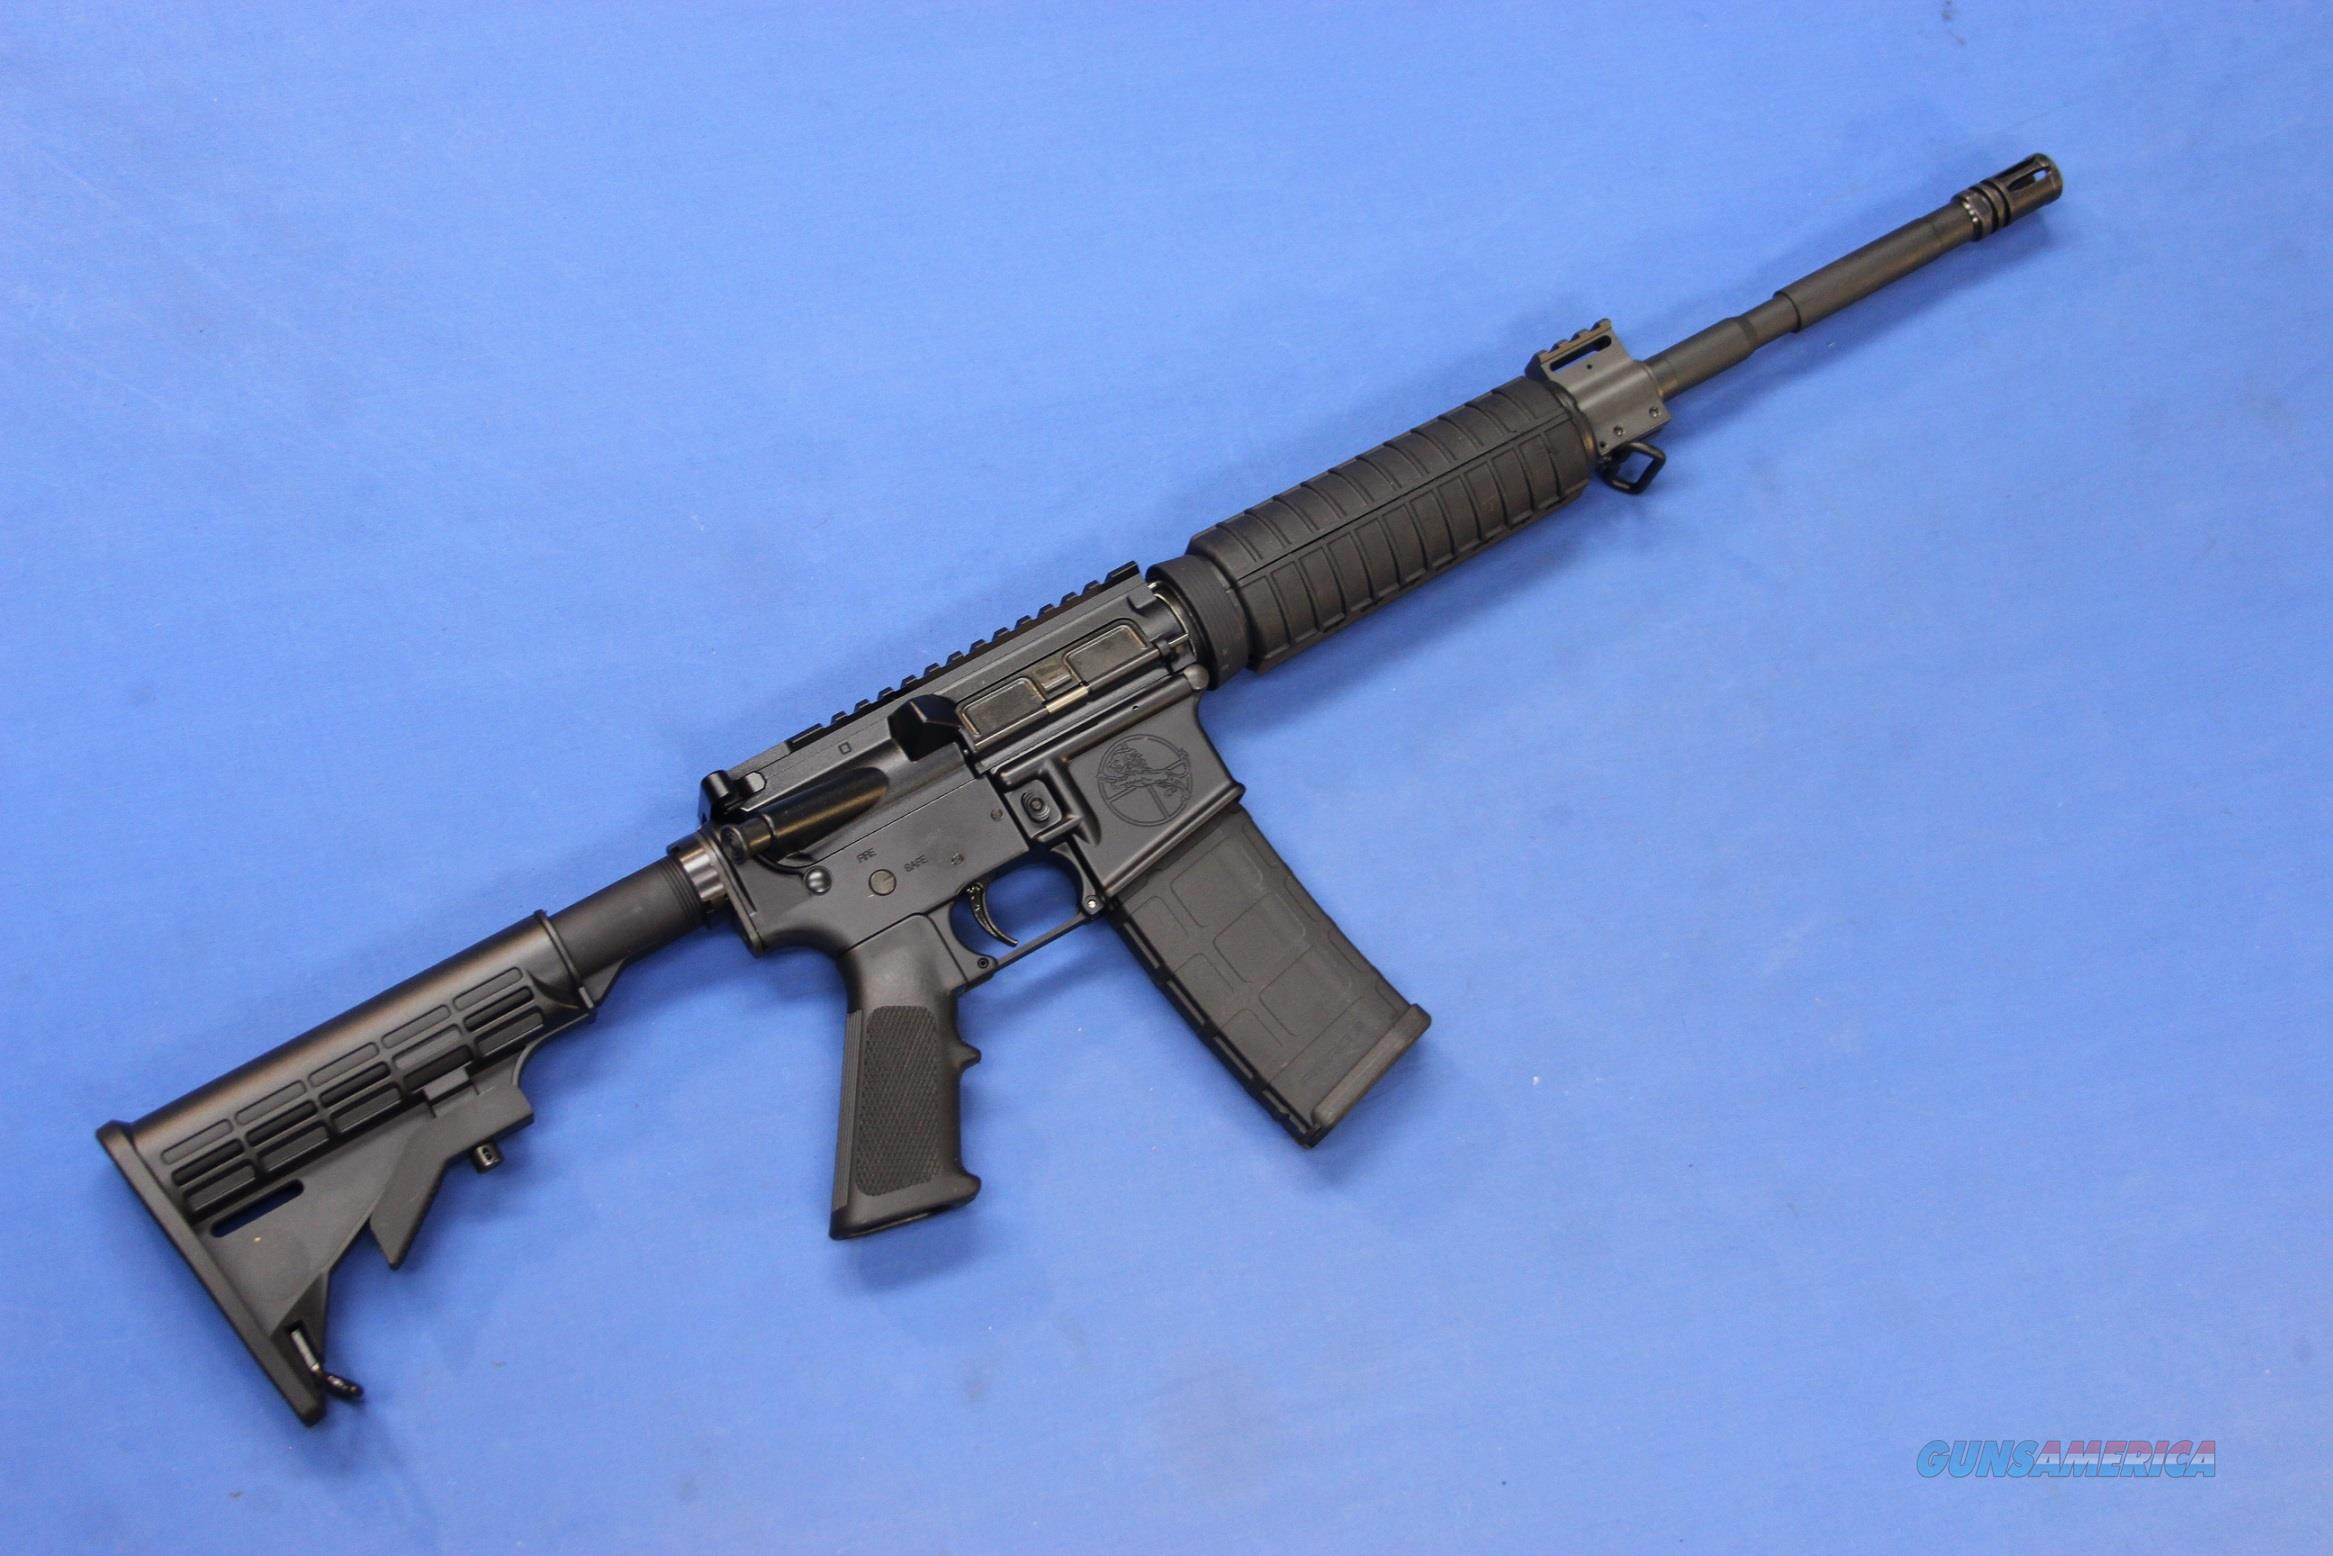 ARMALITE SPR MOD 1 CARBINE 5.56 NATO - NEW IN BOX!  Guns > Rifles > Armalite Rifles > Complete Rifles